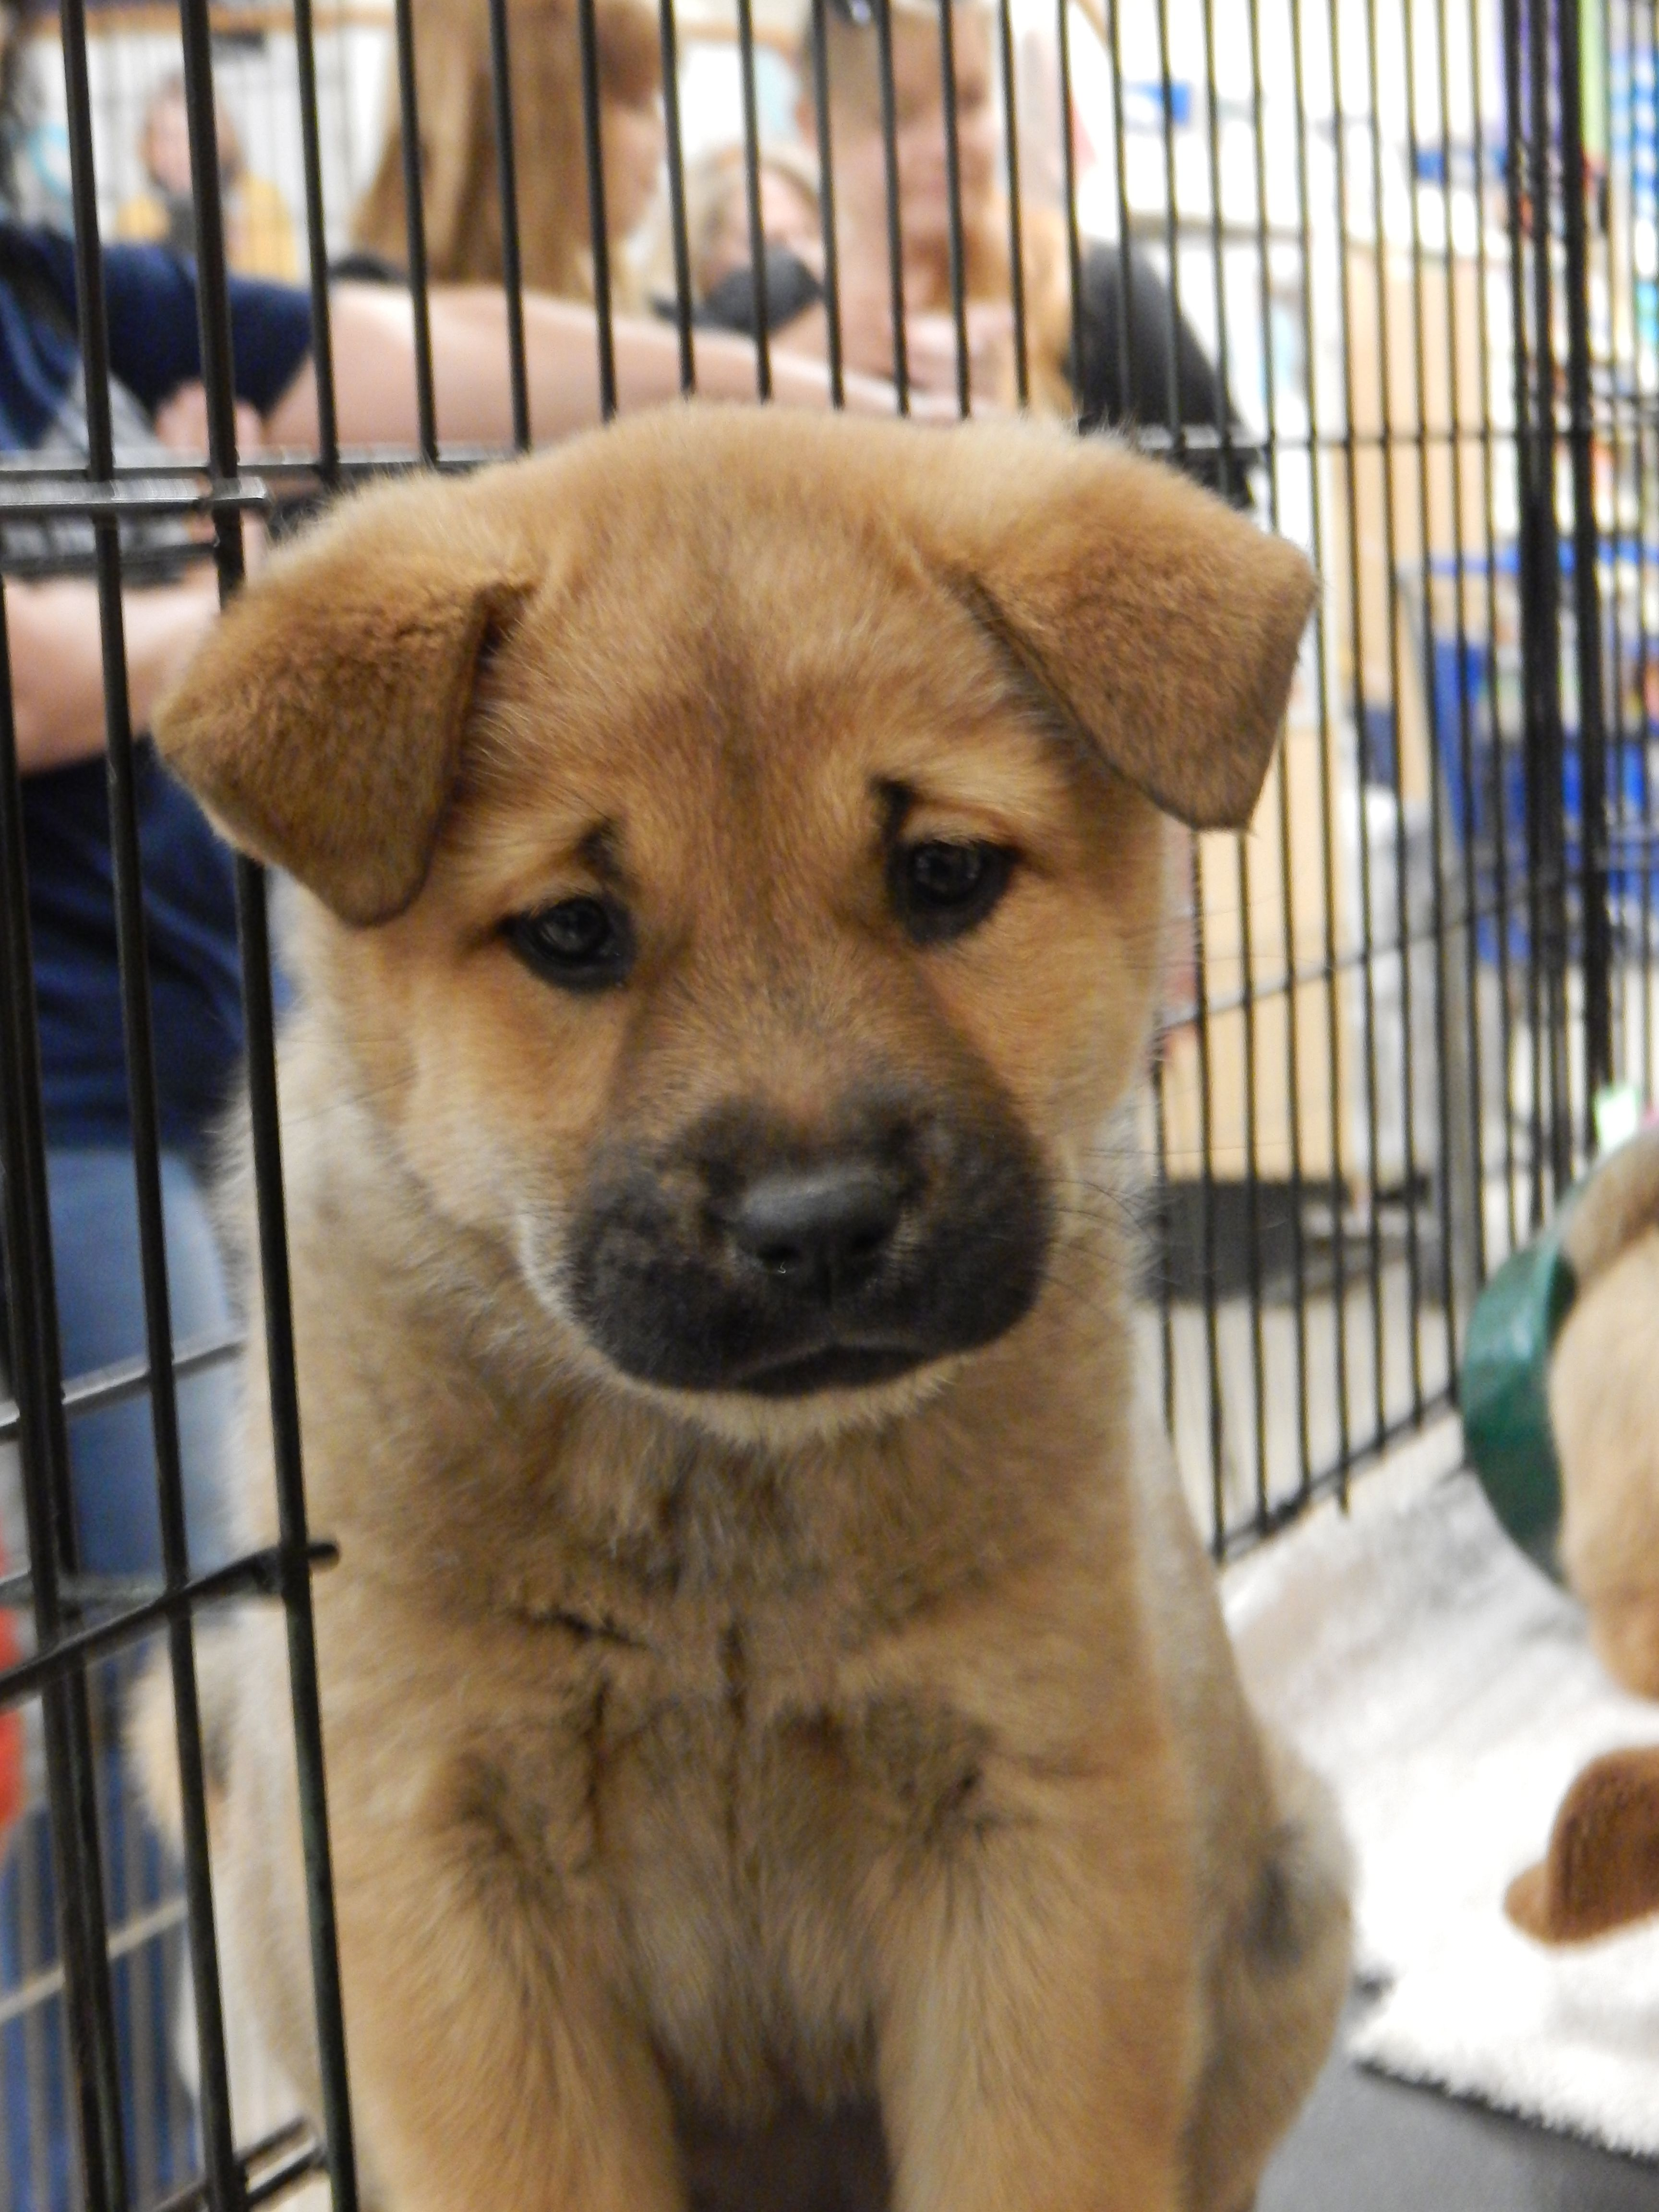 Ellie Is A Chow Labrador Mix Puppy Born On March 1 She Has